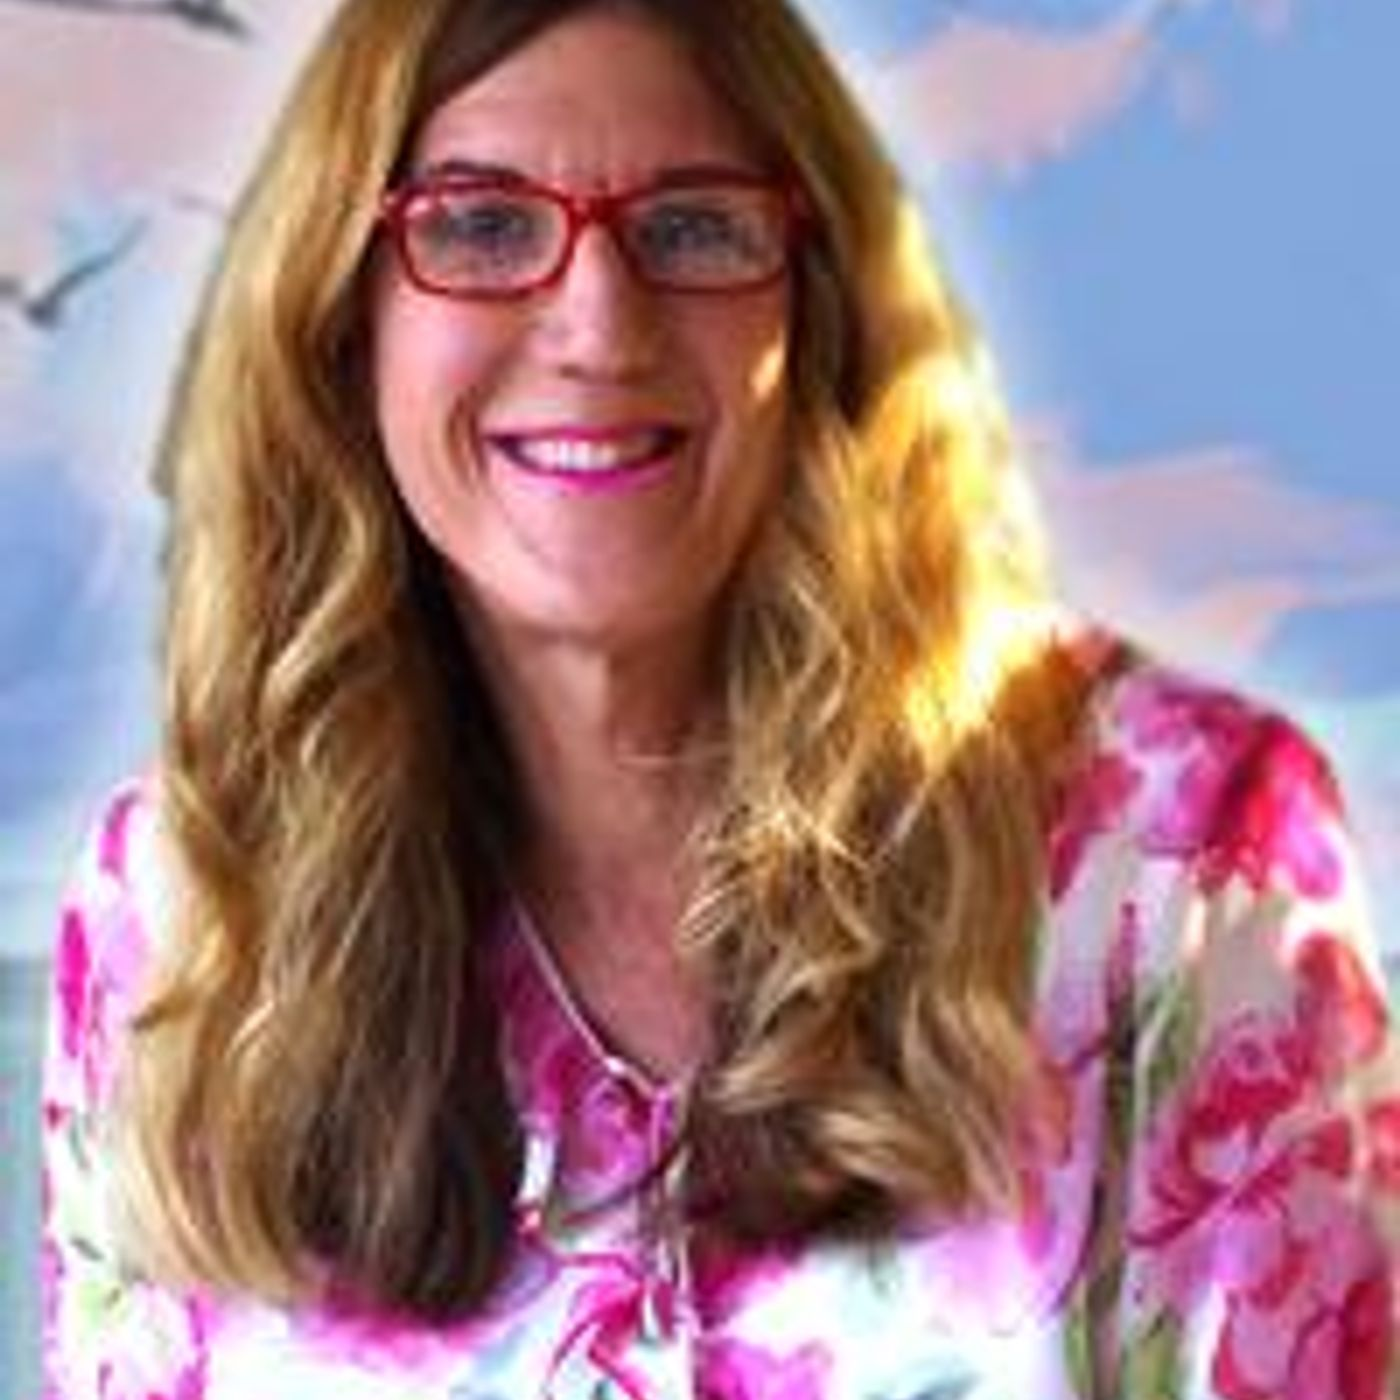 Major transformation: How love rules! With Laura Meeks